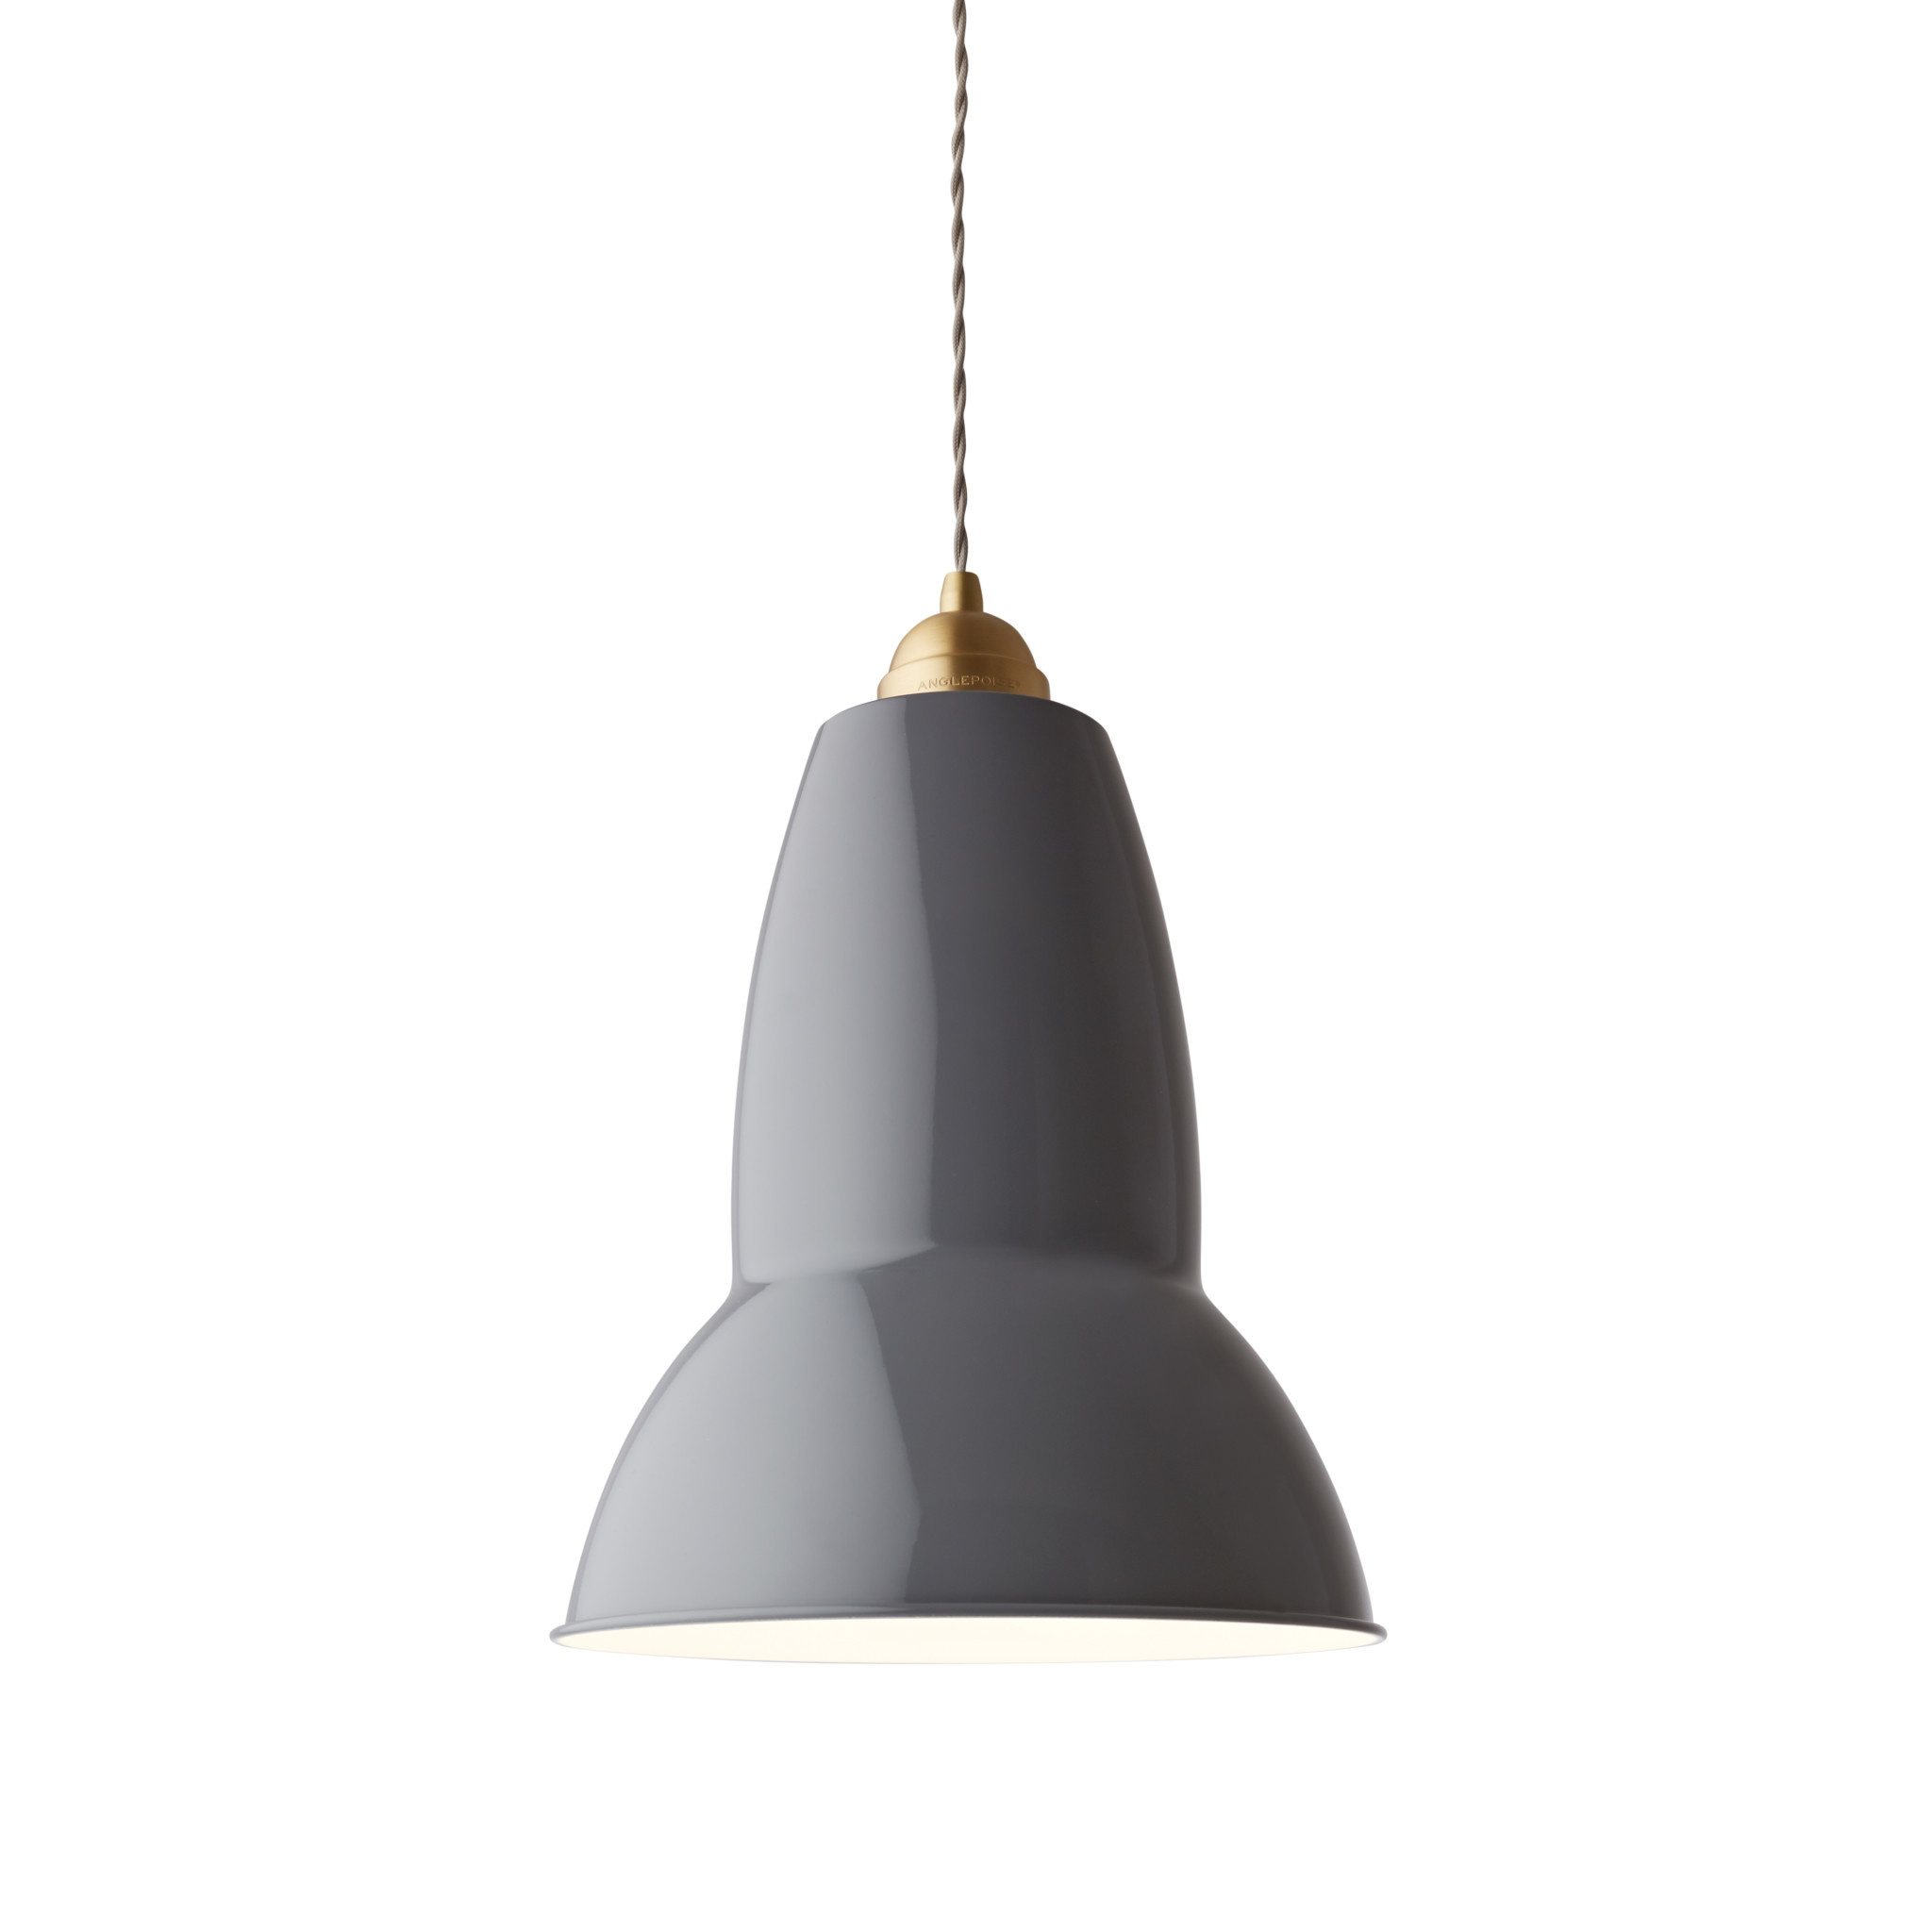 Anglepoise PREORDER Original 1227 Maxi Pendant Lamp - Elephant Grey with Brass